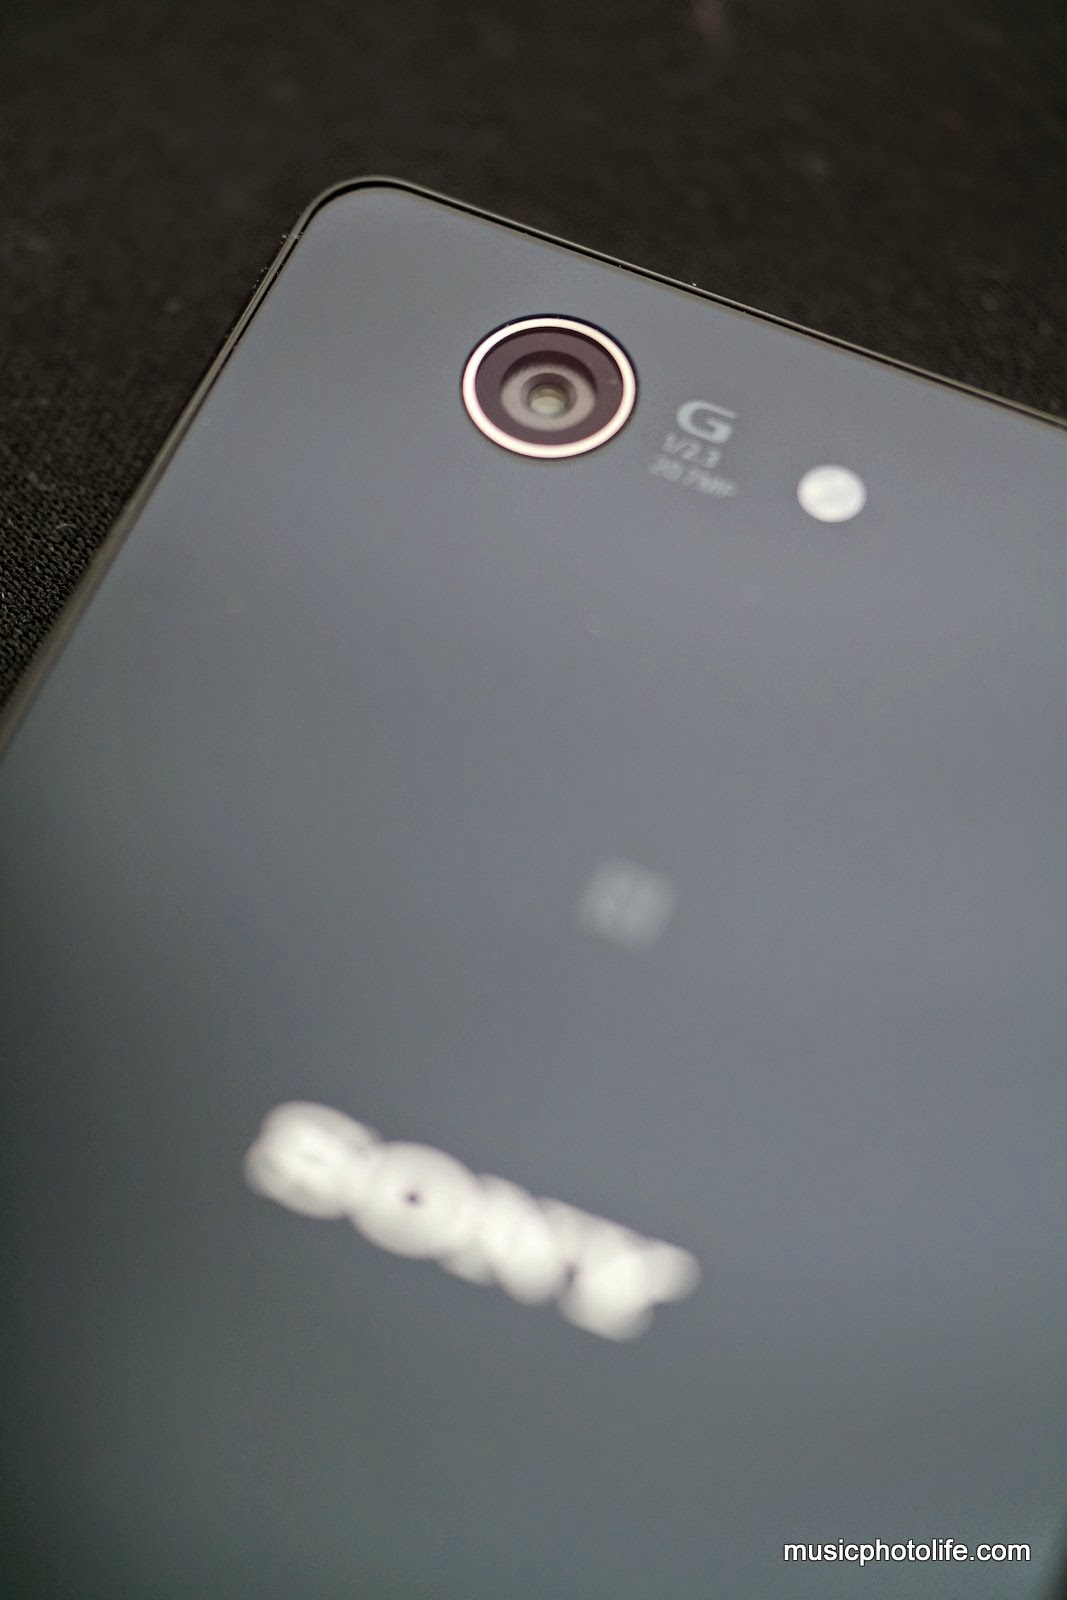 Sony Xperia Z3 Compact Review Small And Powerful Mpl Uat Seken Camera Focused Like The Predecessors